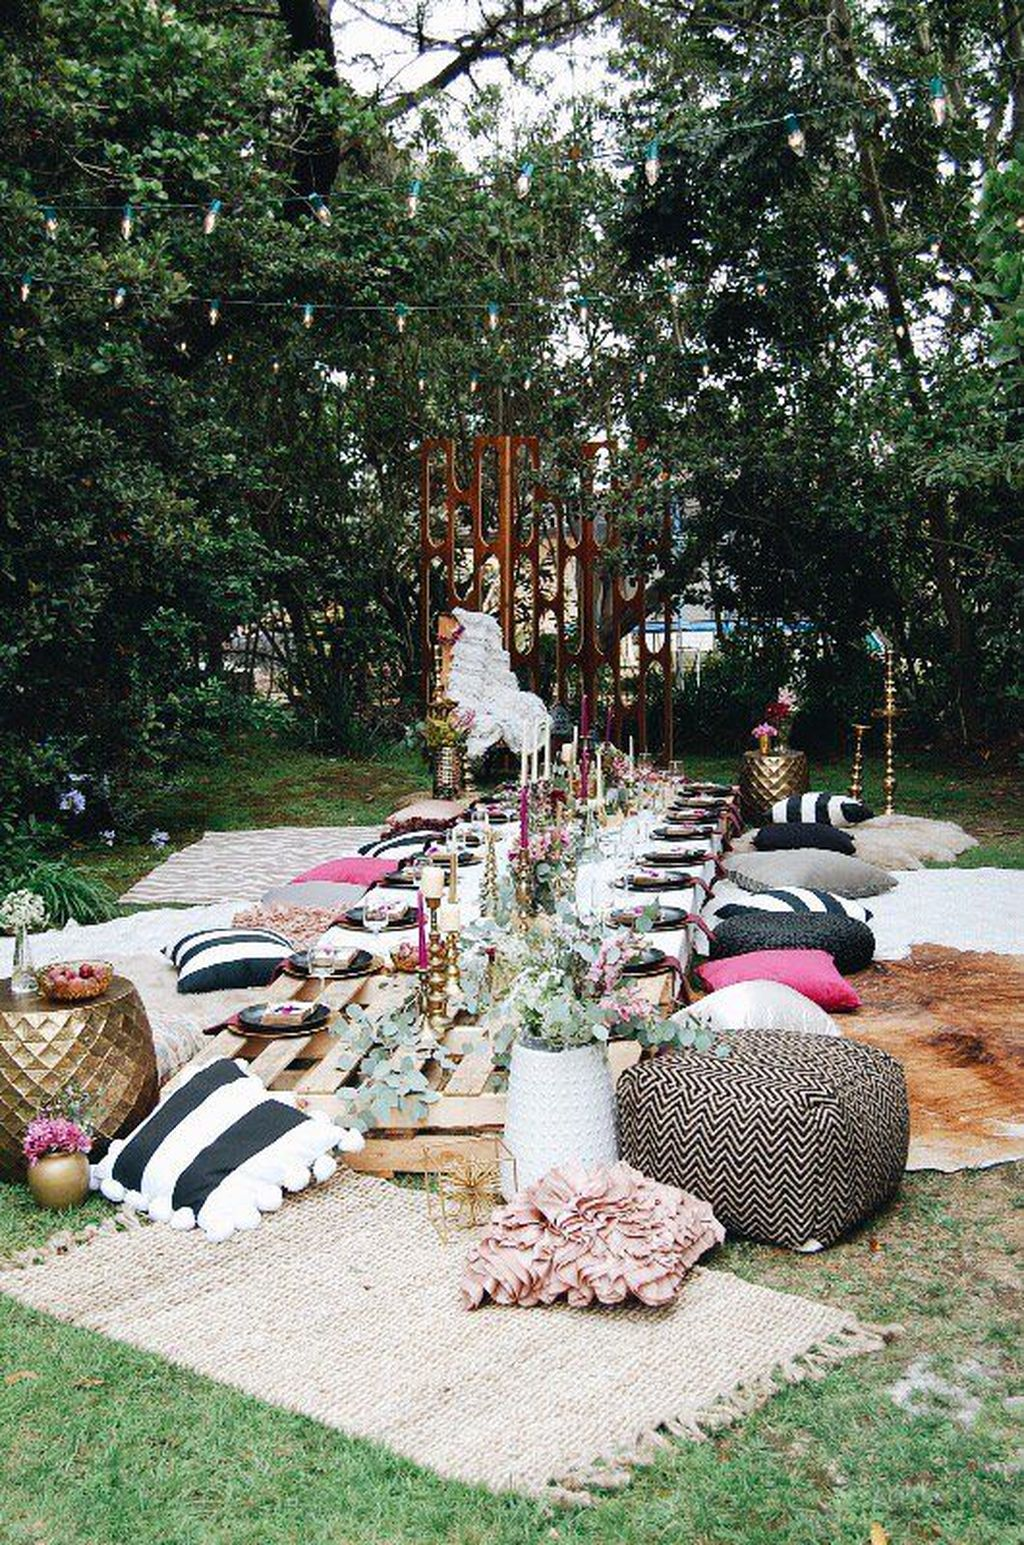 The Best Backyard Summer Party Decorating Ideas 25